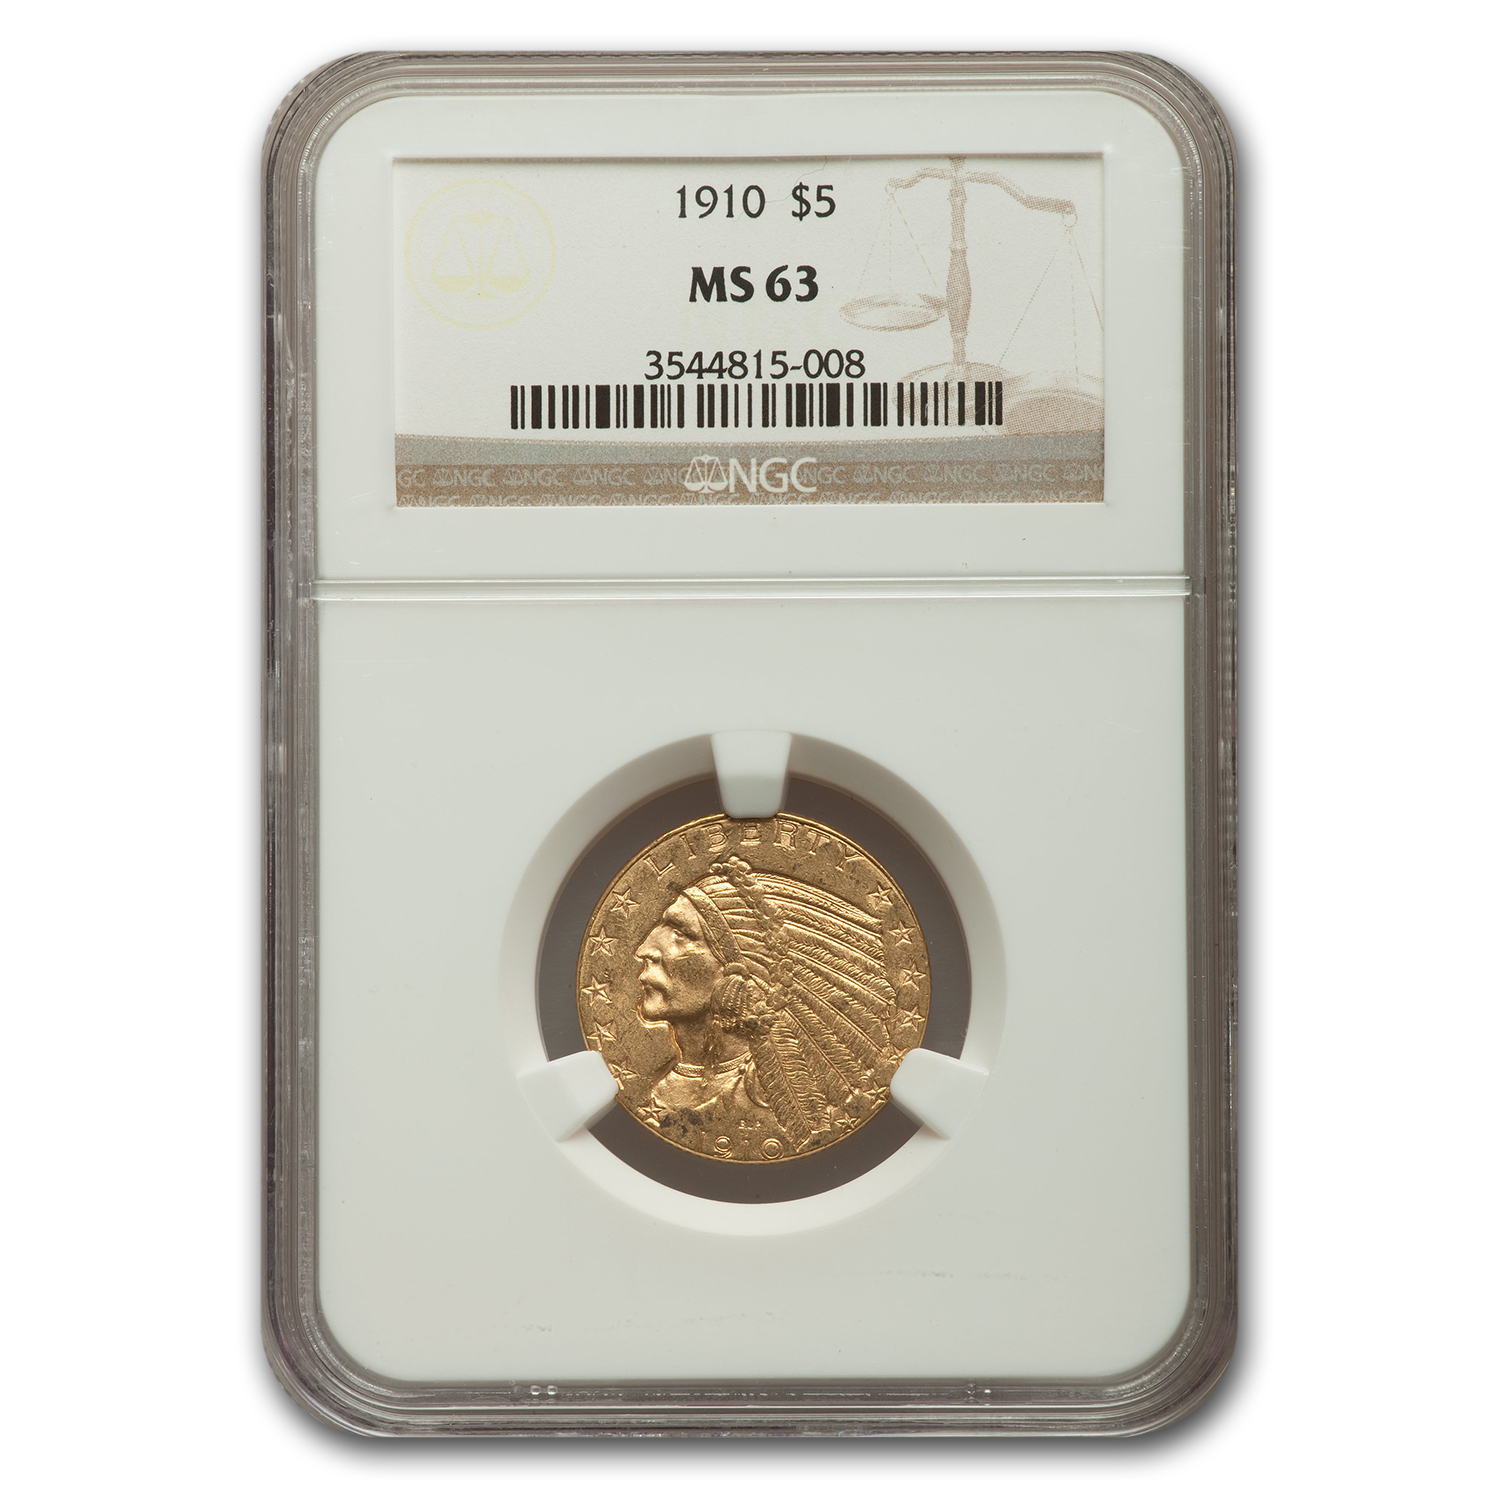 1910 $5 Indian Gold Half Eagle MS-63 NGC